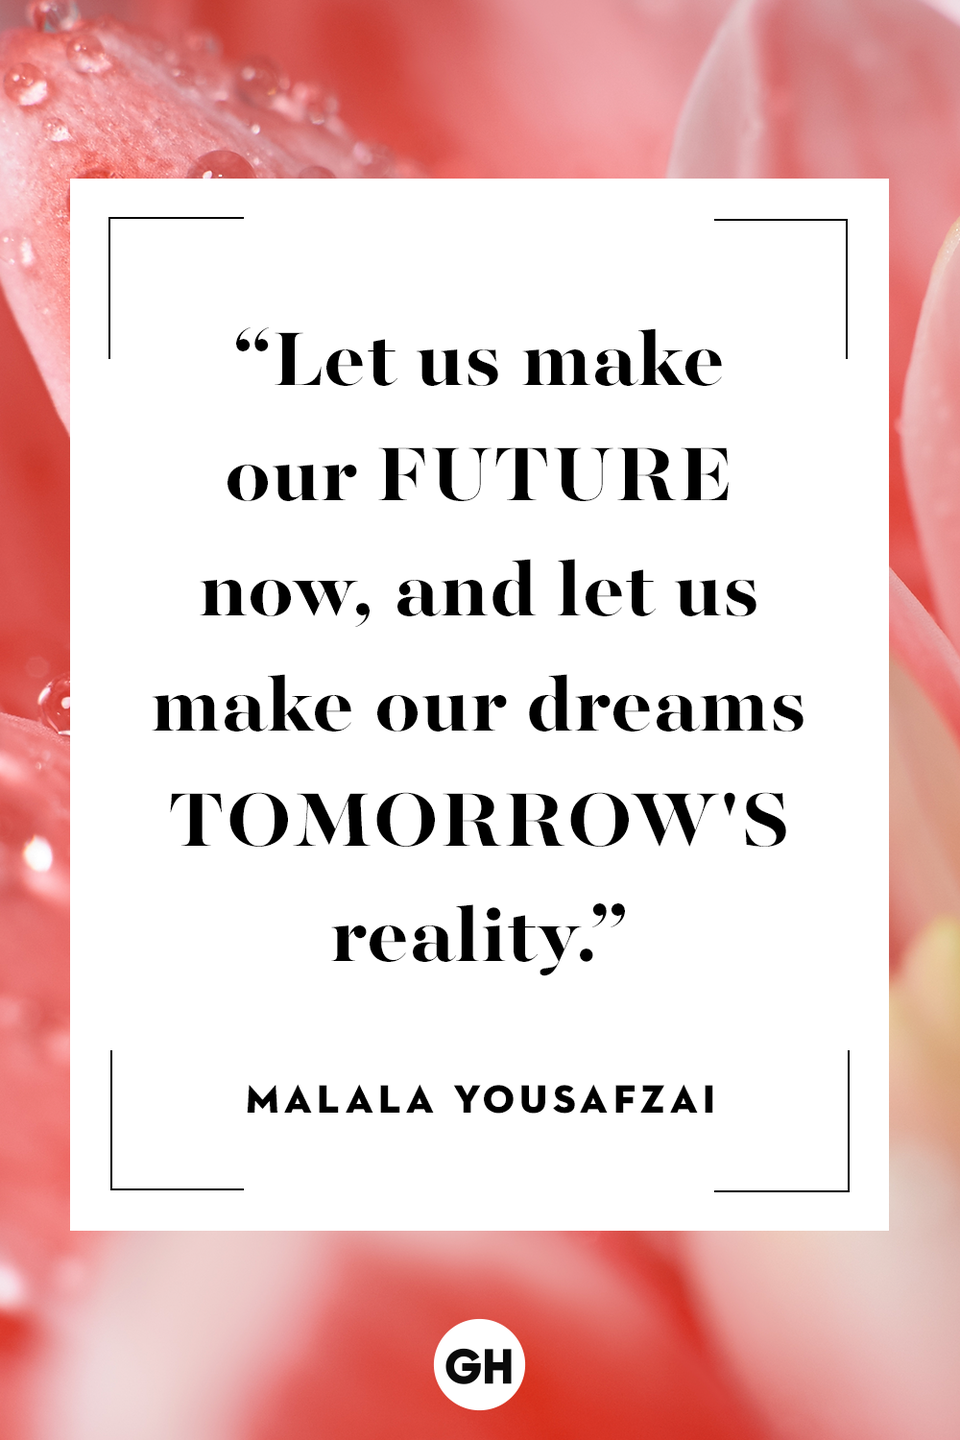 <p>Let us make our future now, and let us make our dreams tomorrow's reality. </p>